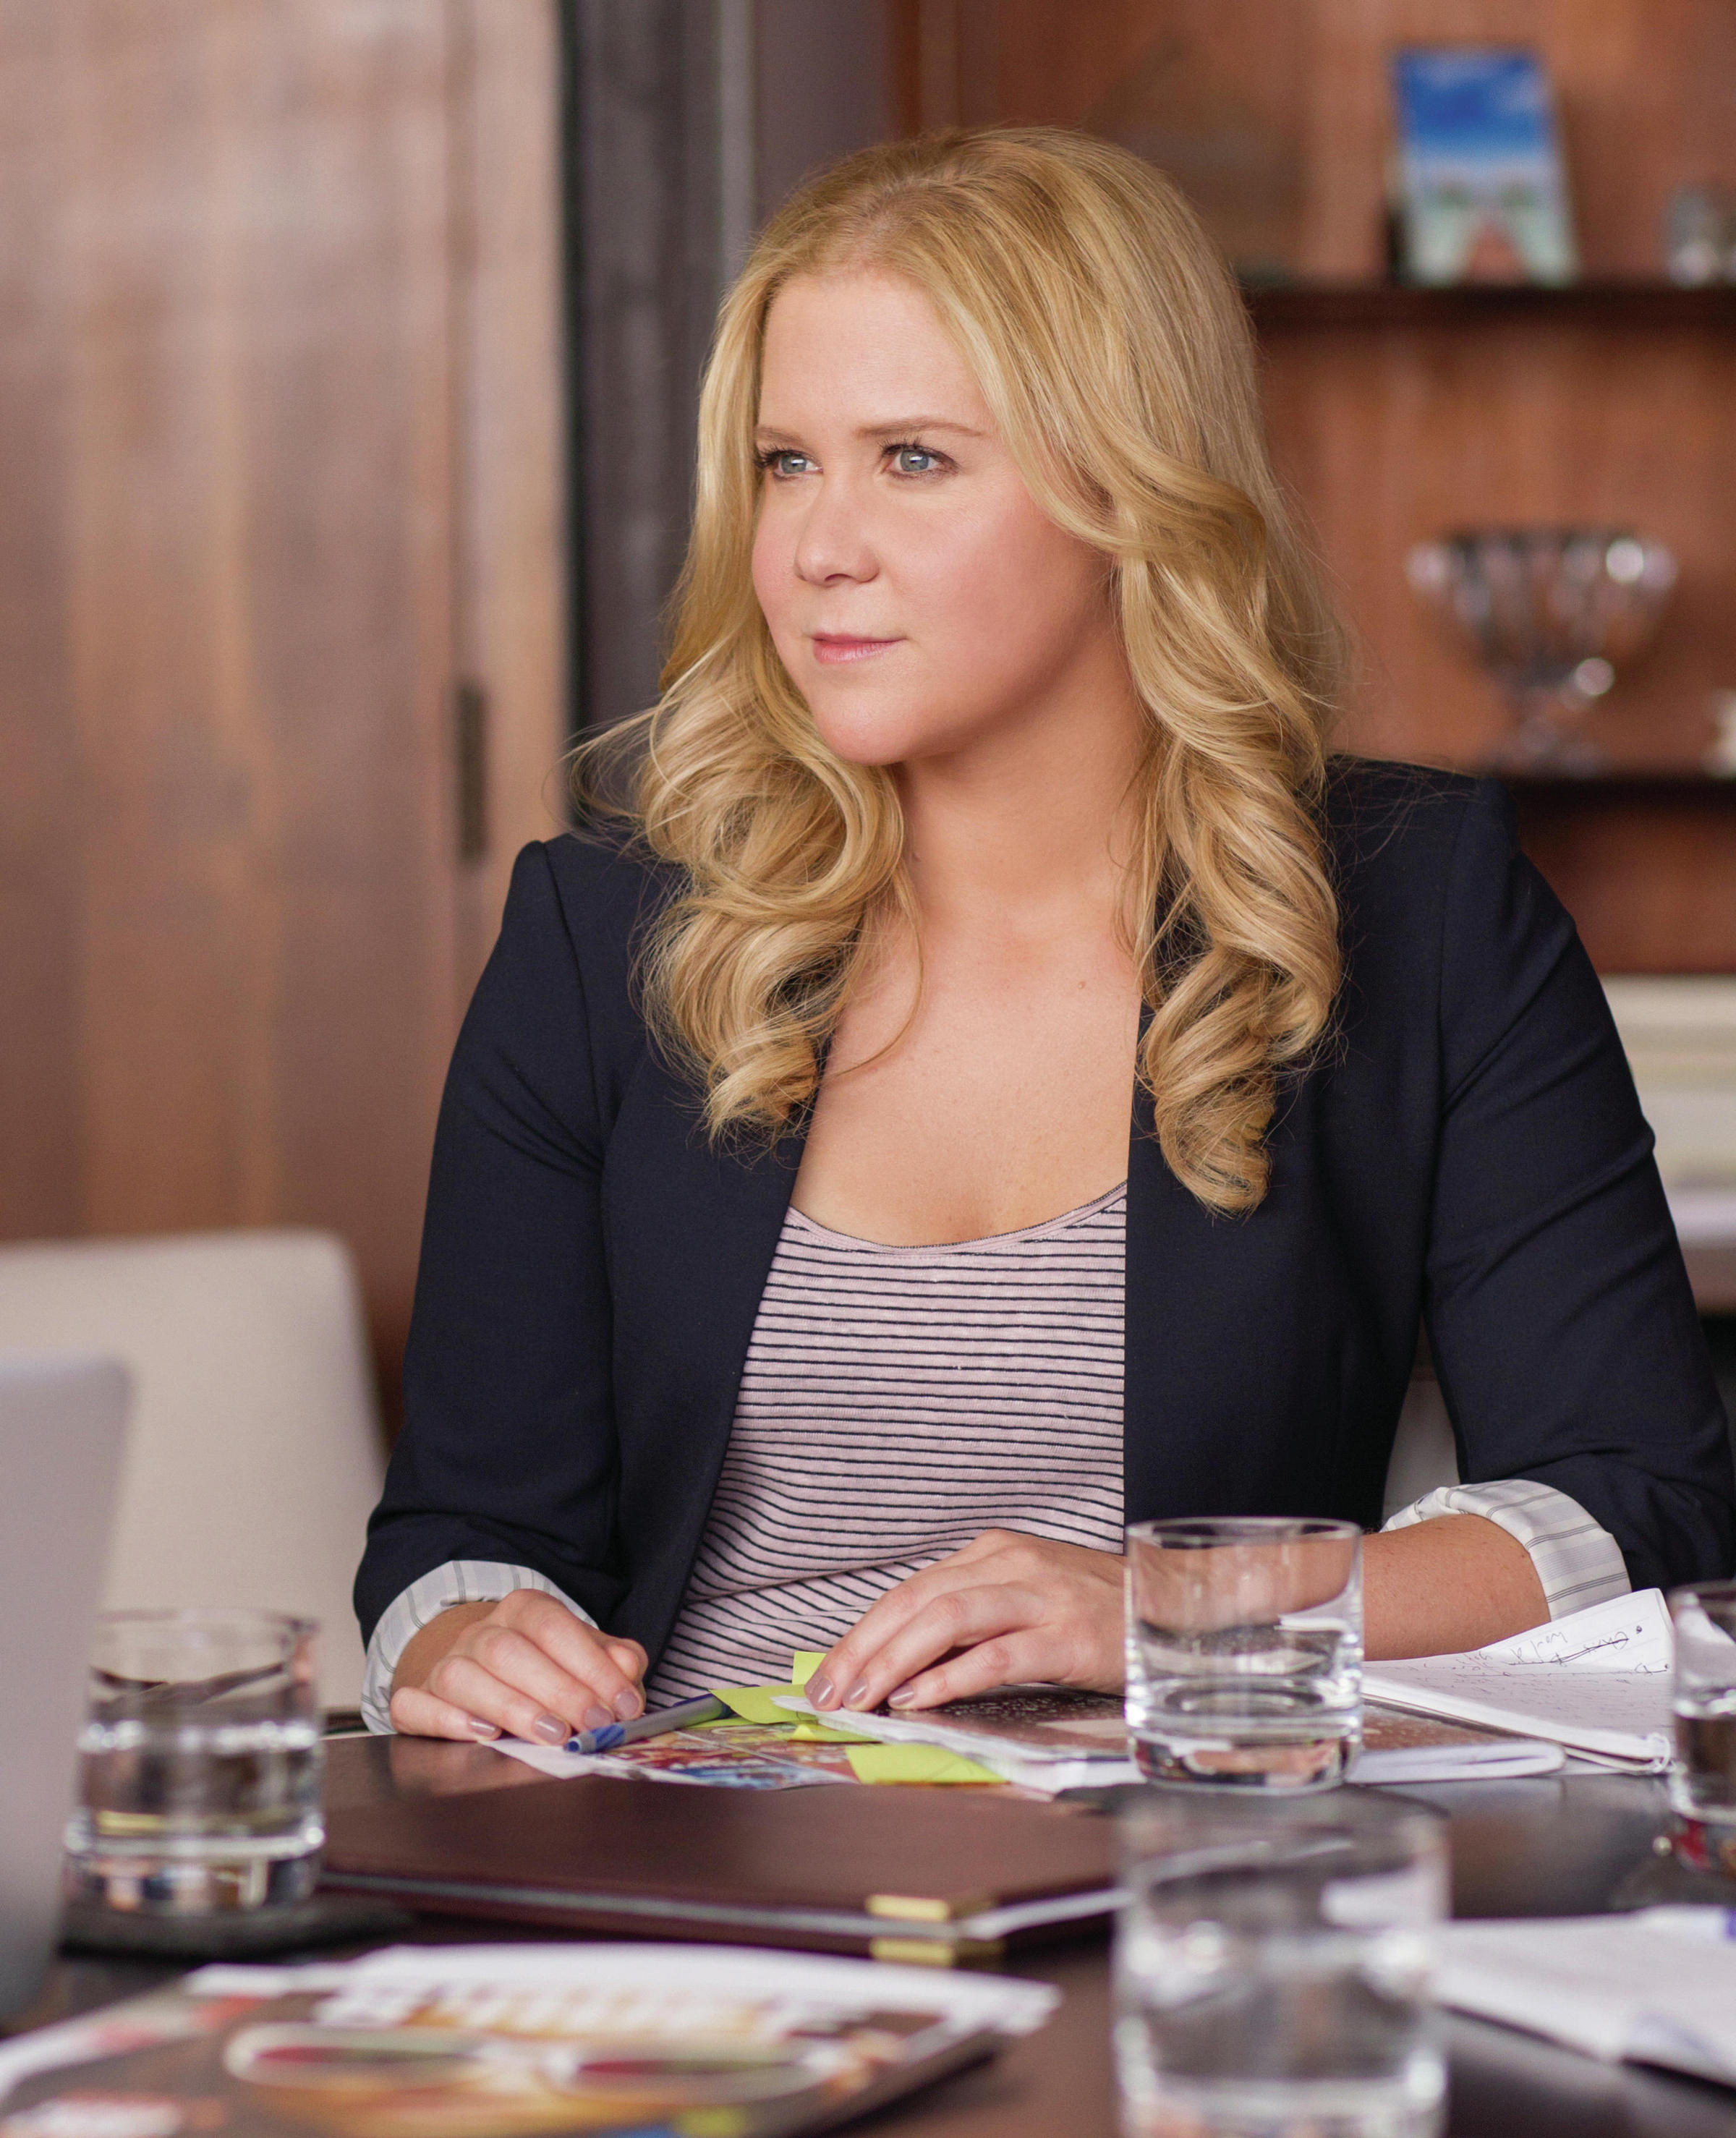 Trainwreck, written by Amy Schumer and directed by Judd Apatow, stars  Schumer as a woman who lives her life without apologies.